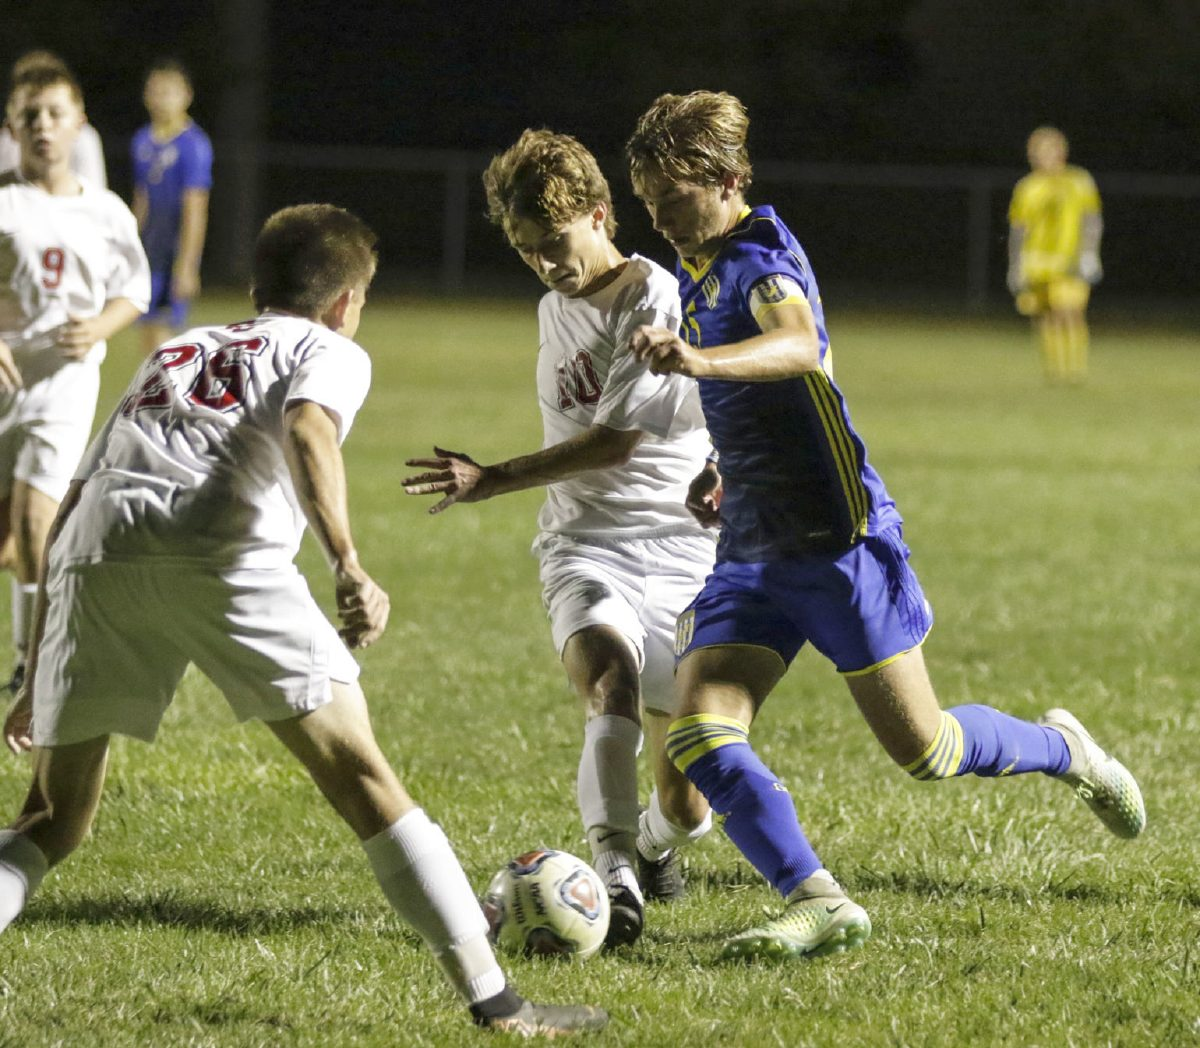 Men's Soccer Moves On To The Sectional Championship (GDR Sports)